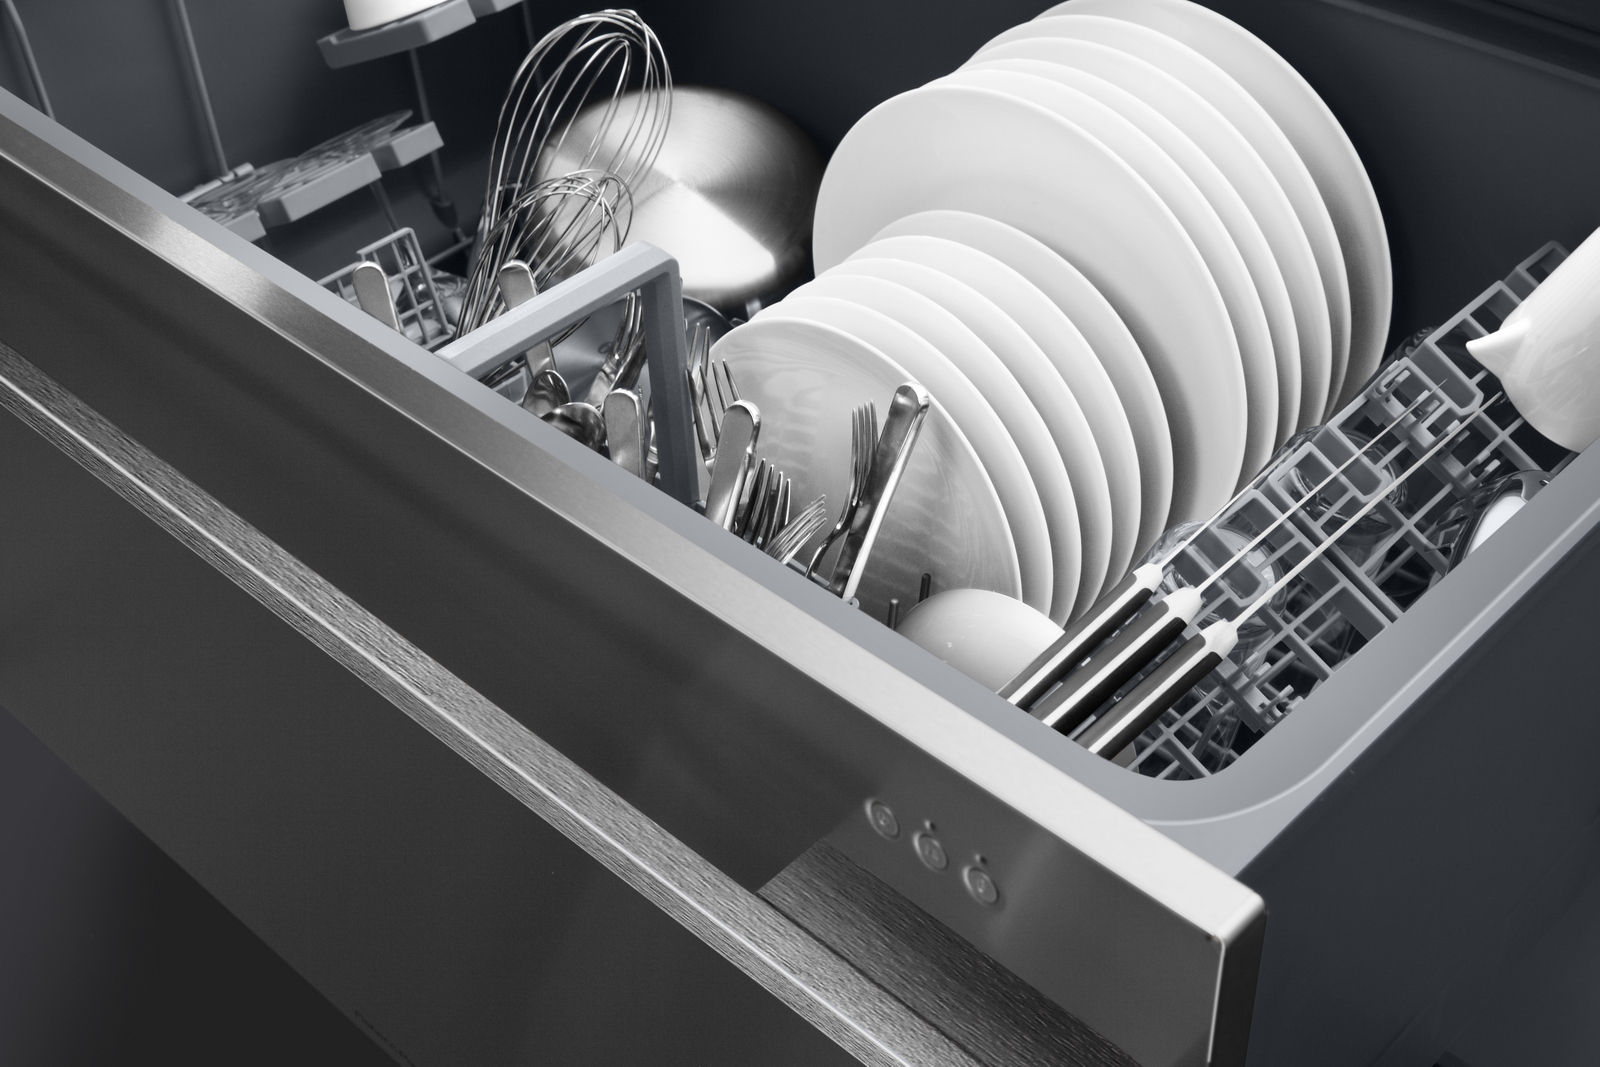 catalog double style dishdrawer fisher drawer paykel stainless dishwasher steel